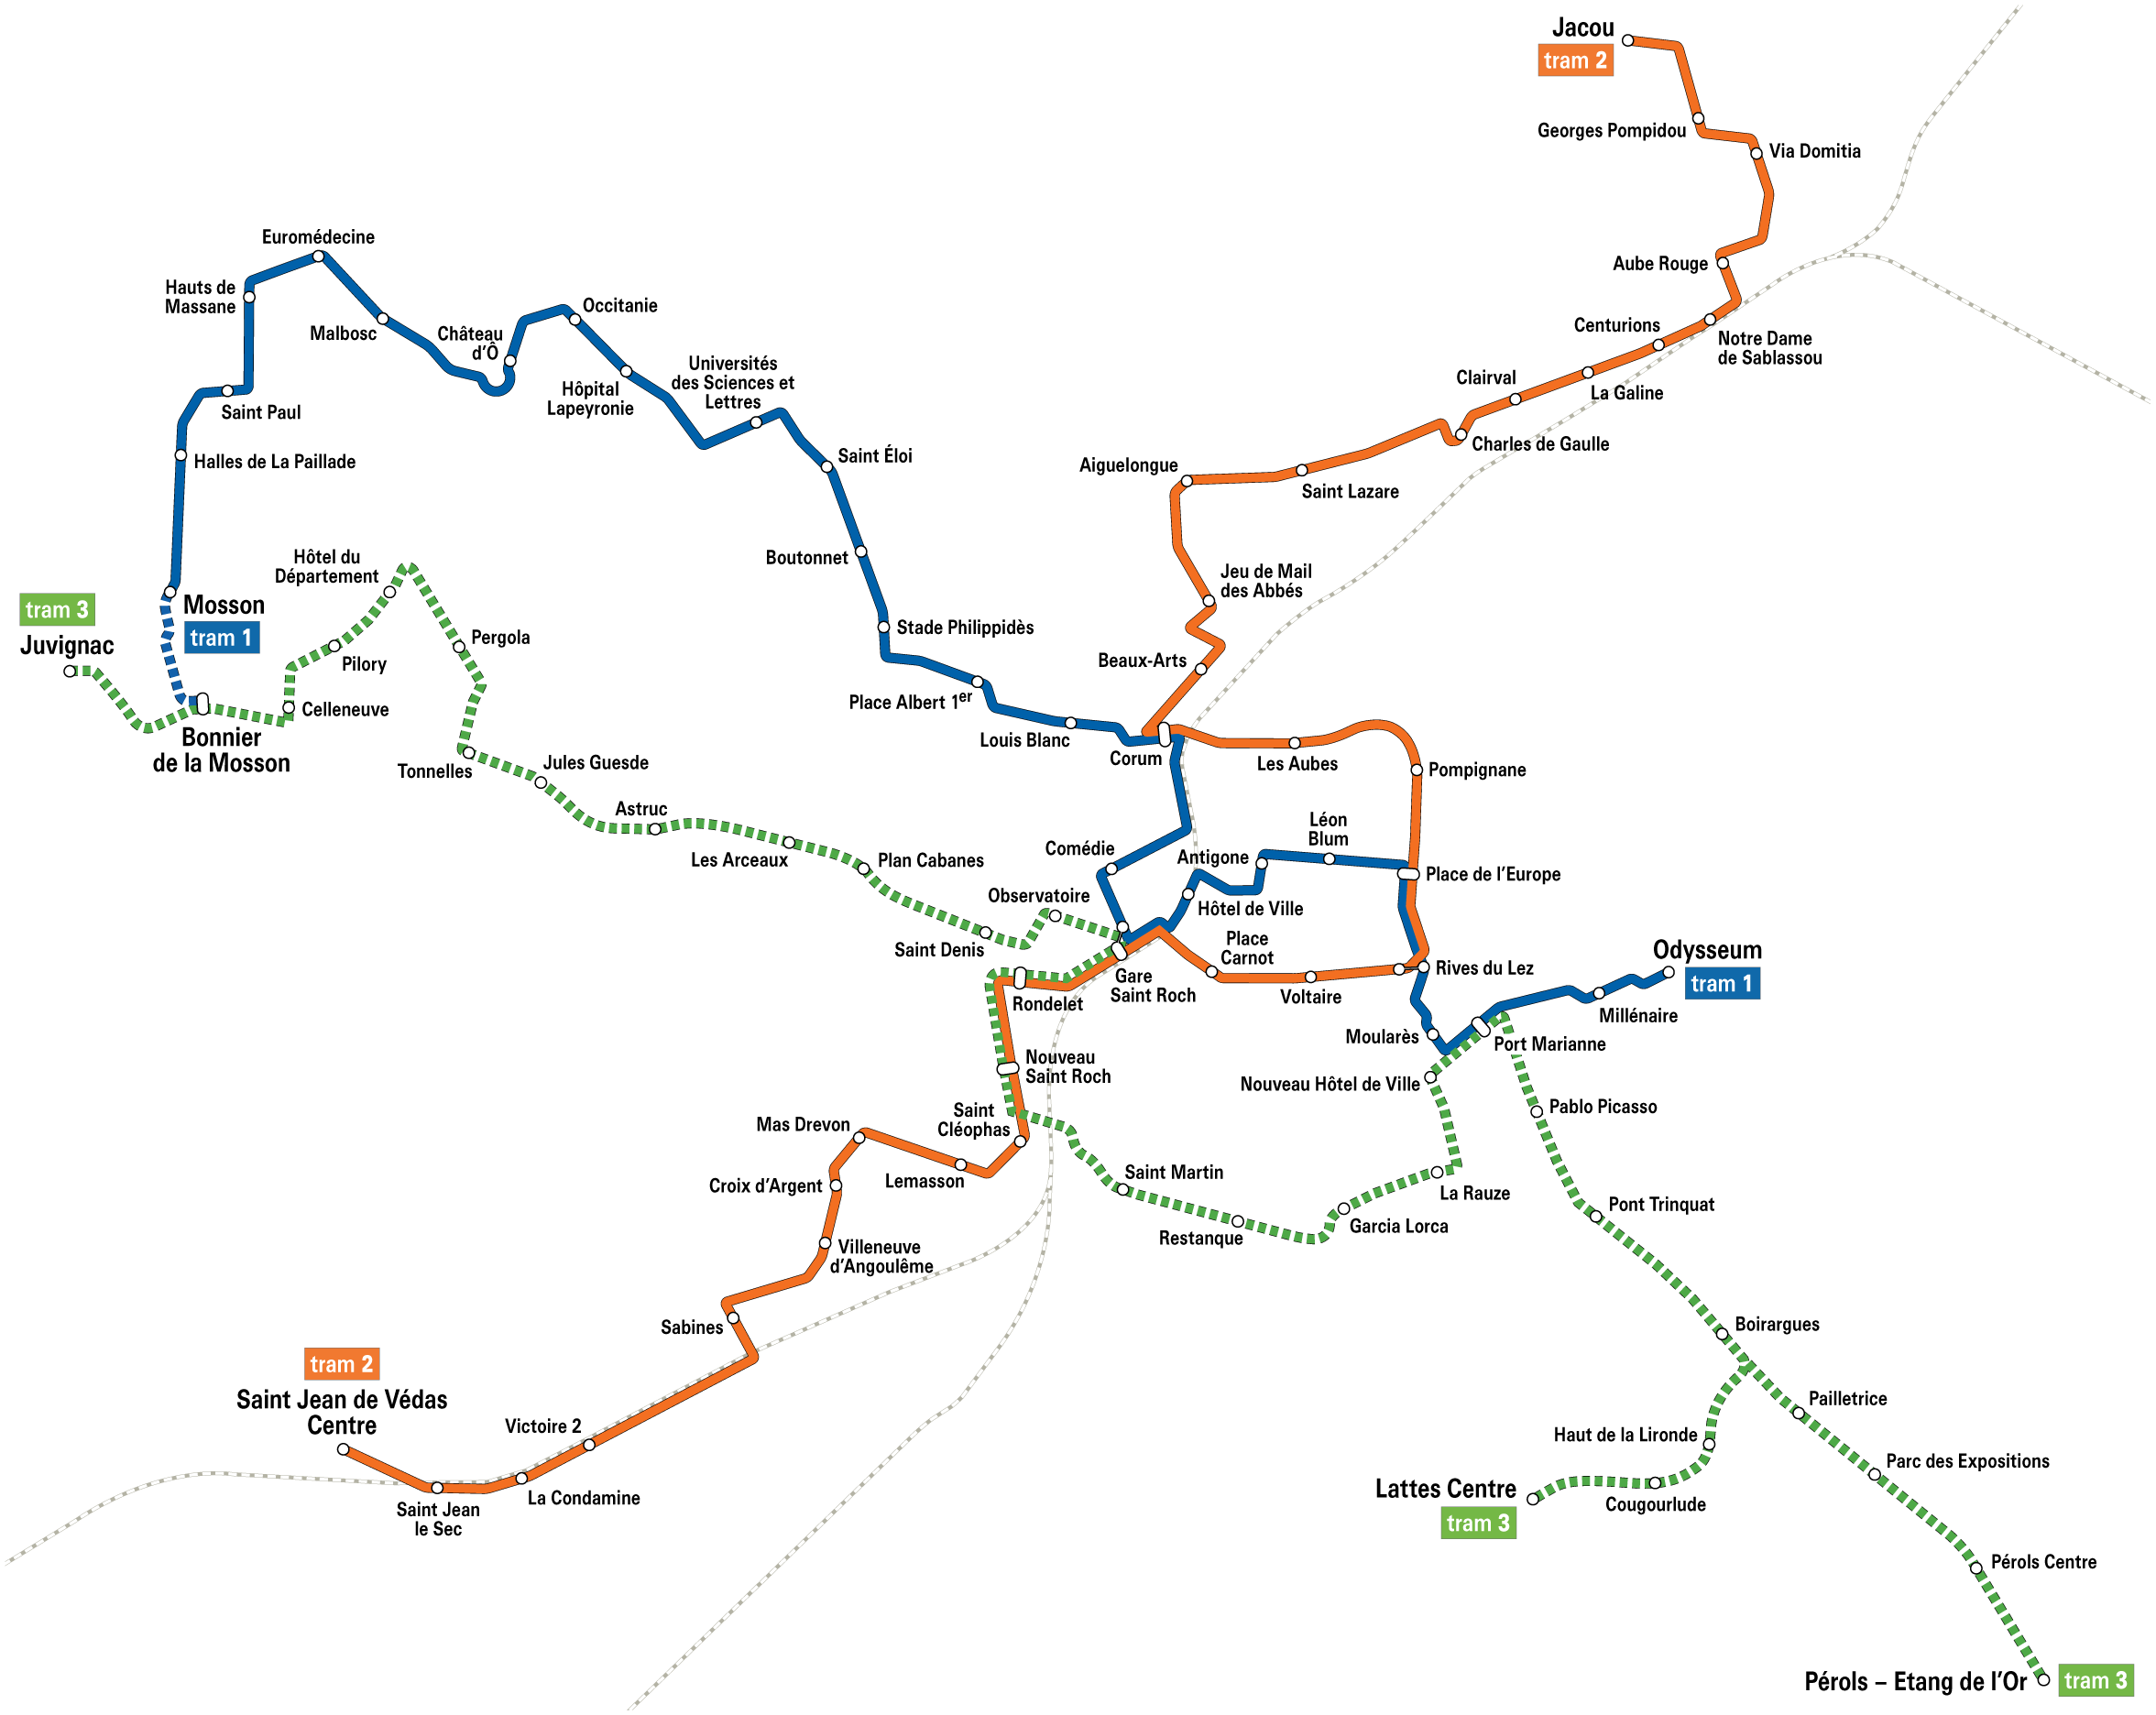 map of rail europe routes, map of british airways routes, map of bus routes, on full map of megabus routes